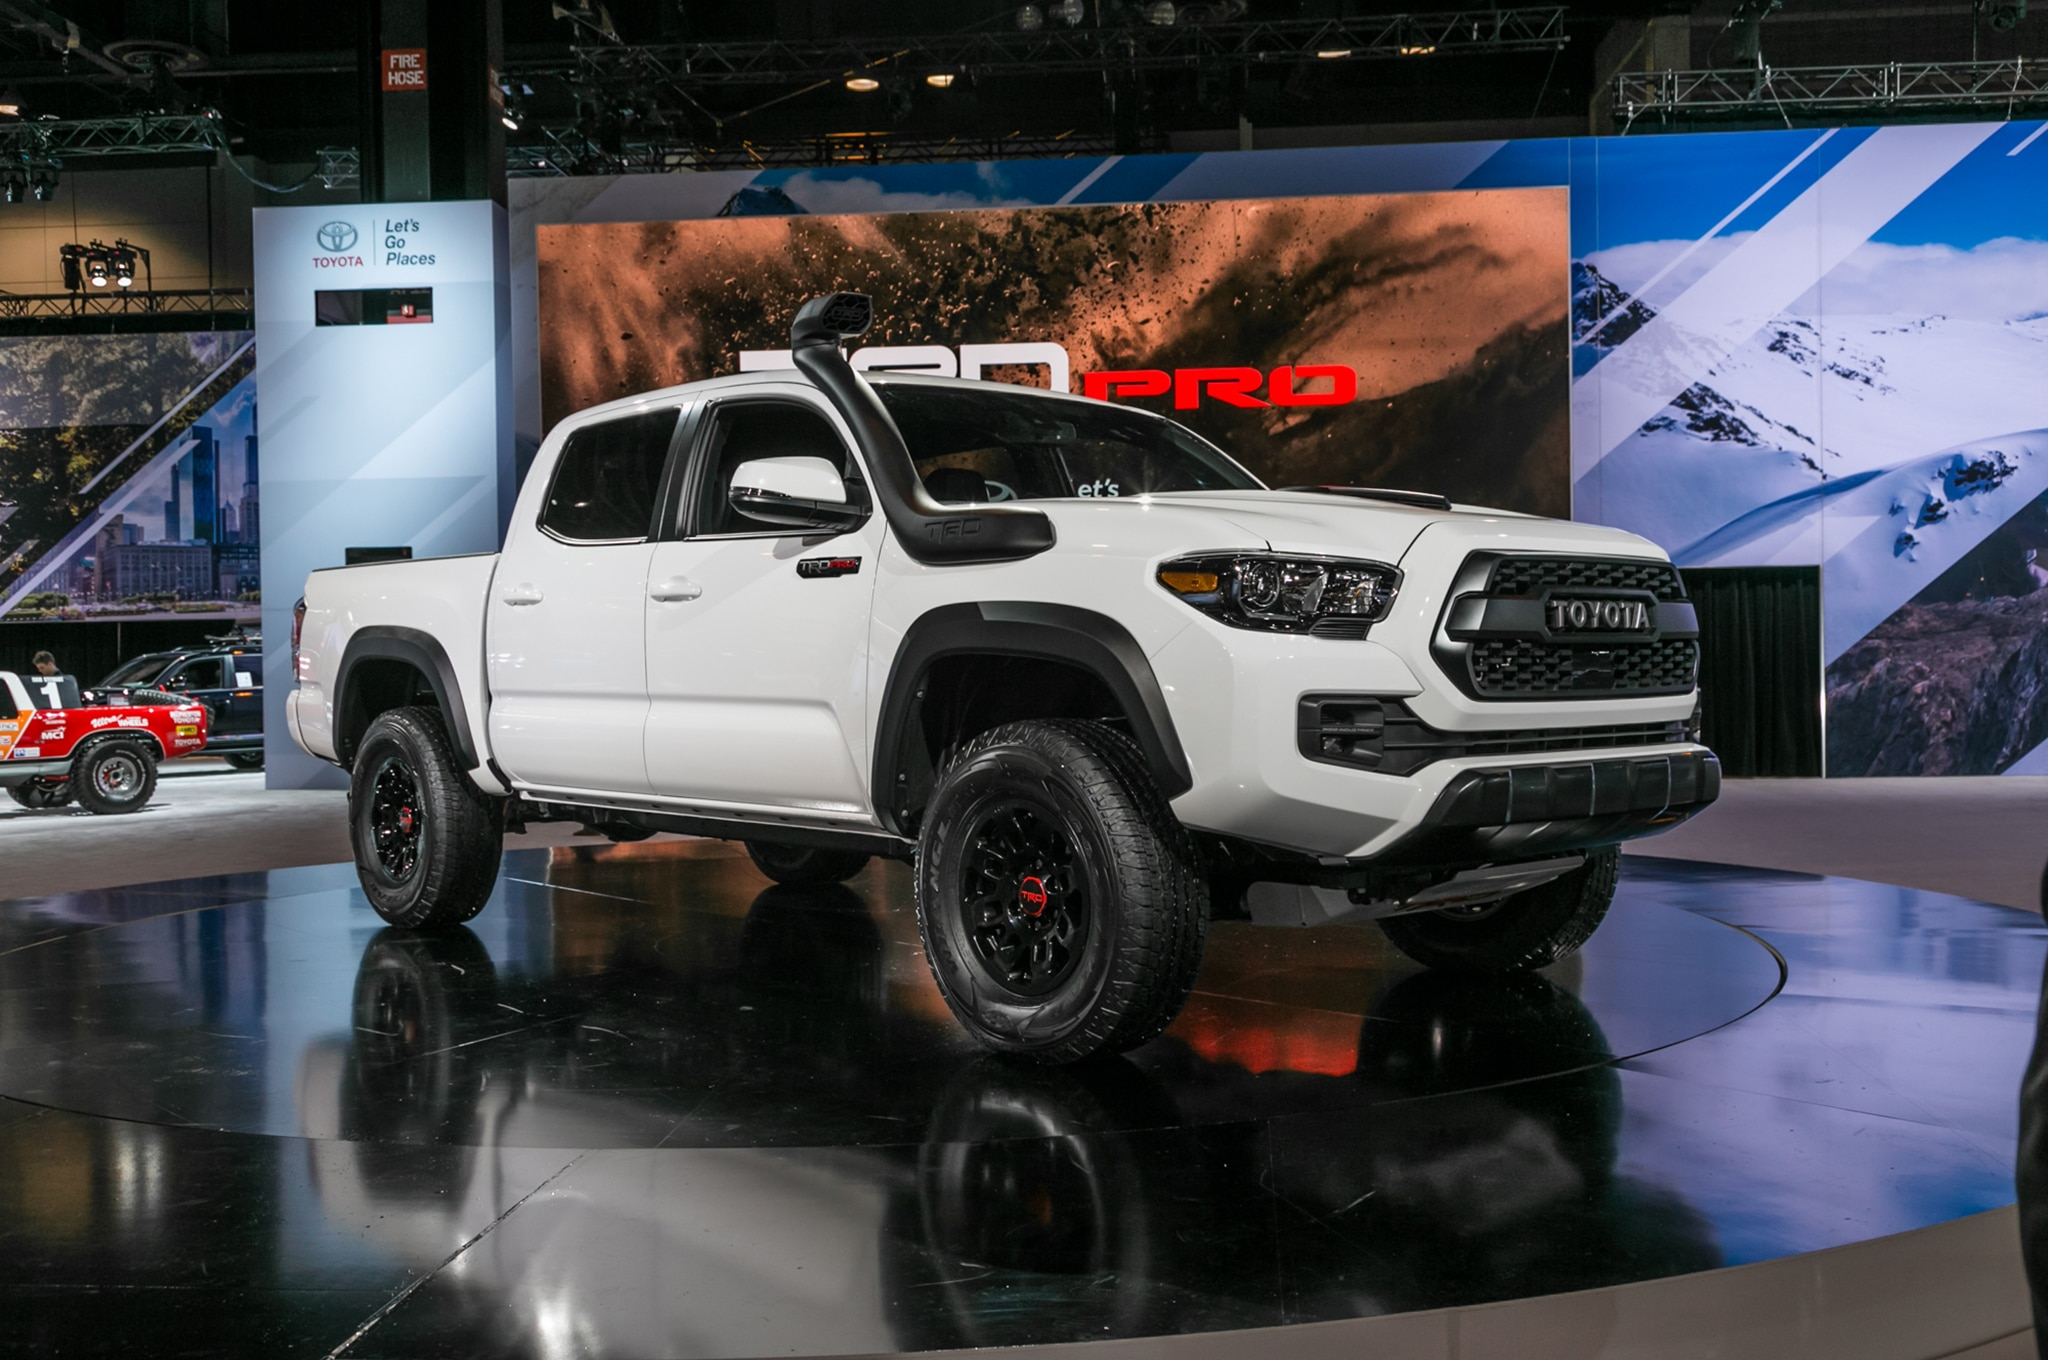 2018 Tacoma Trd Off Road >> Toyota TRD Pro Lineup Gets Foxy for 2019 | Automobile Magazine